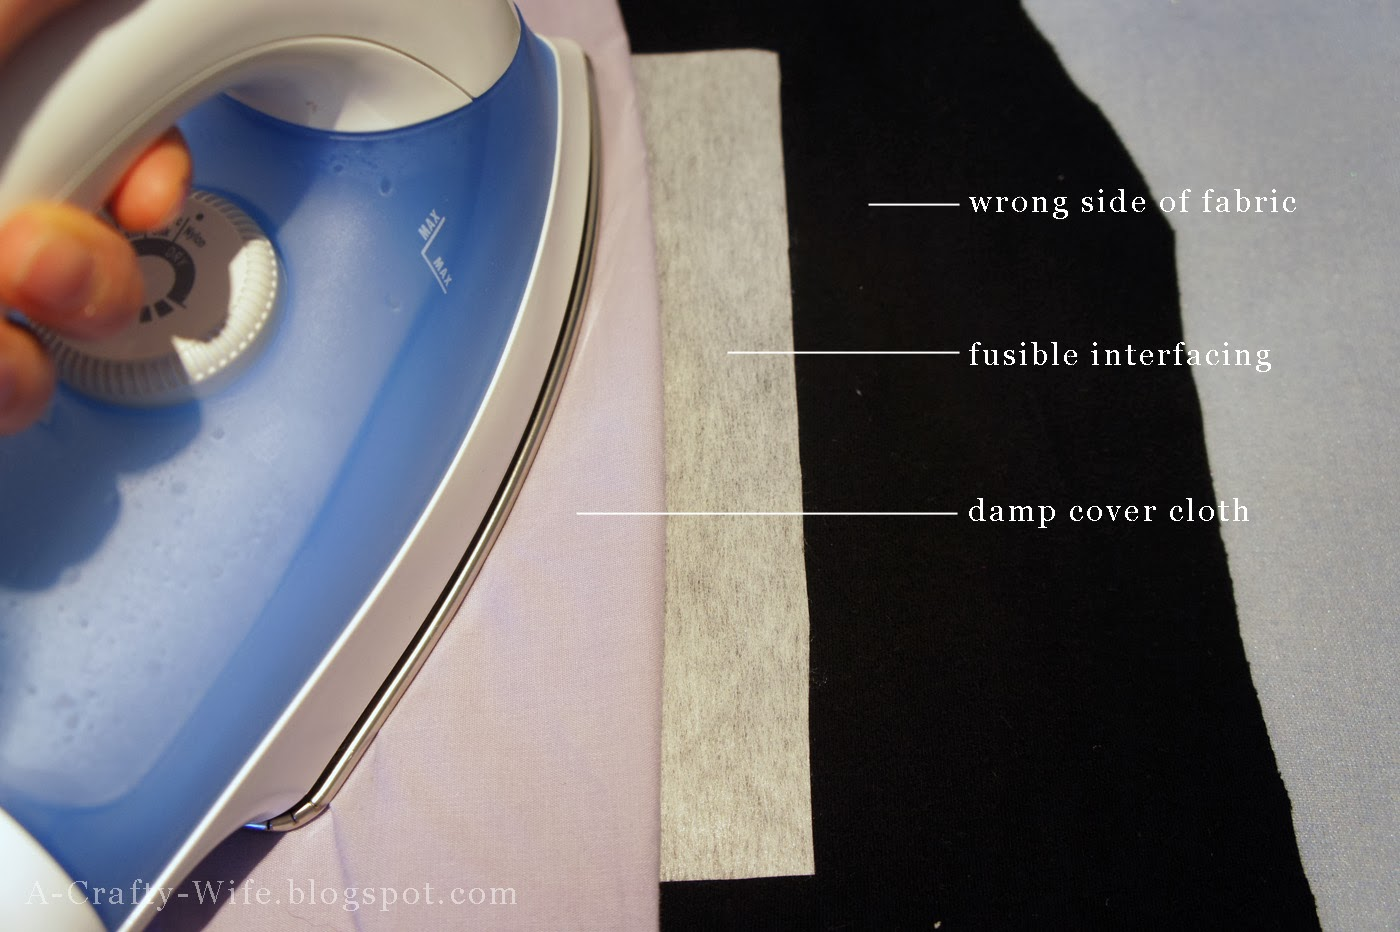 Iron fusible interfacing to wrong side of tshirt for strength | A Crafty Wife